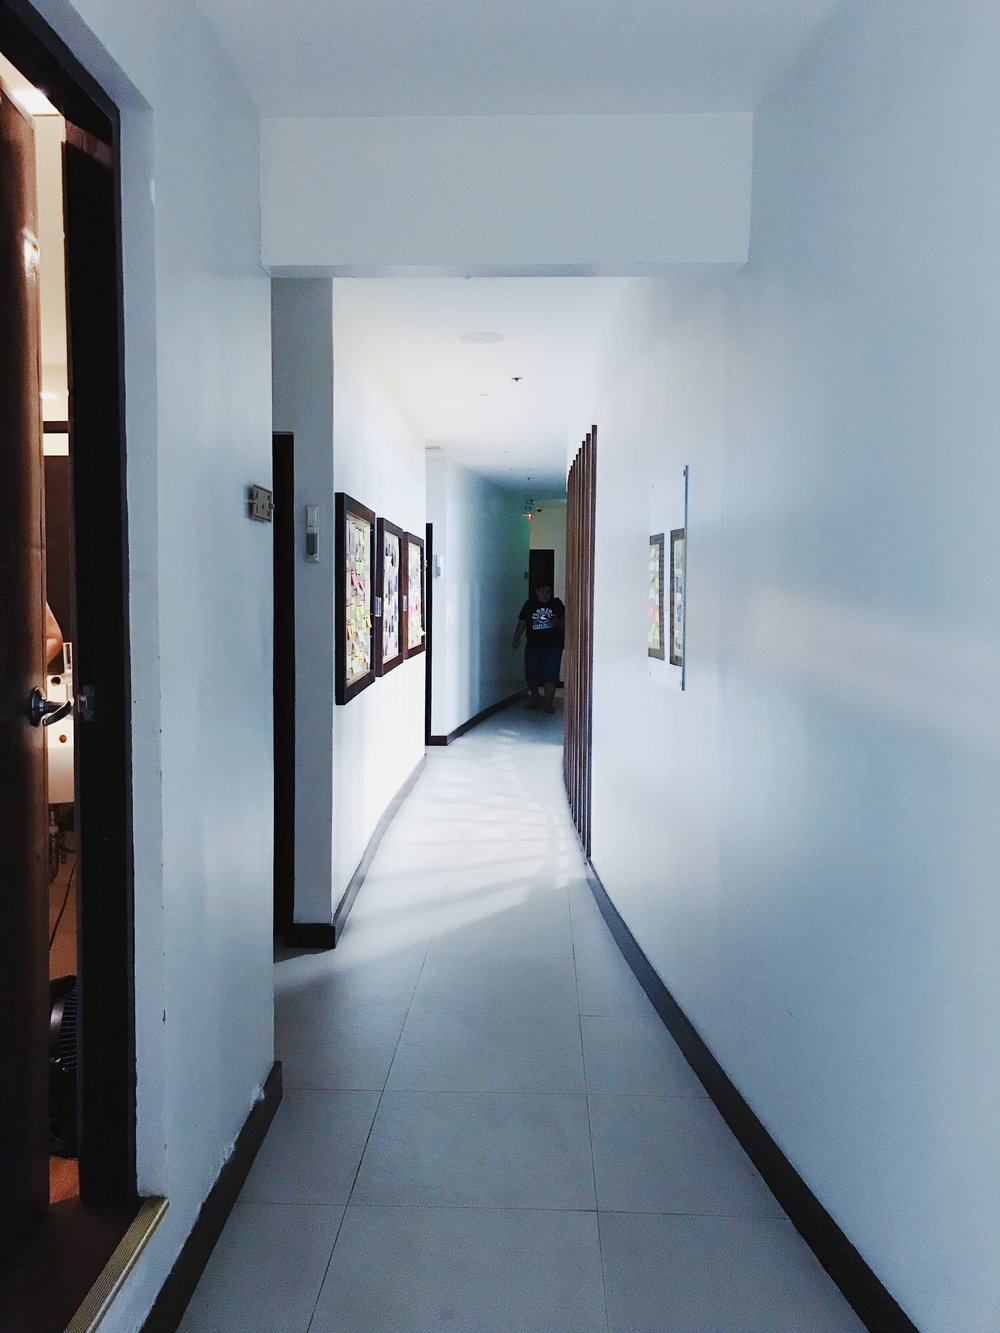 The hallway leading to the rooms. The door on the left is the shower room.